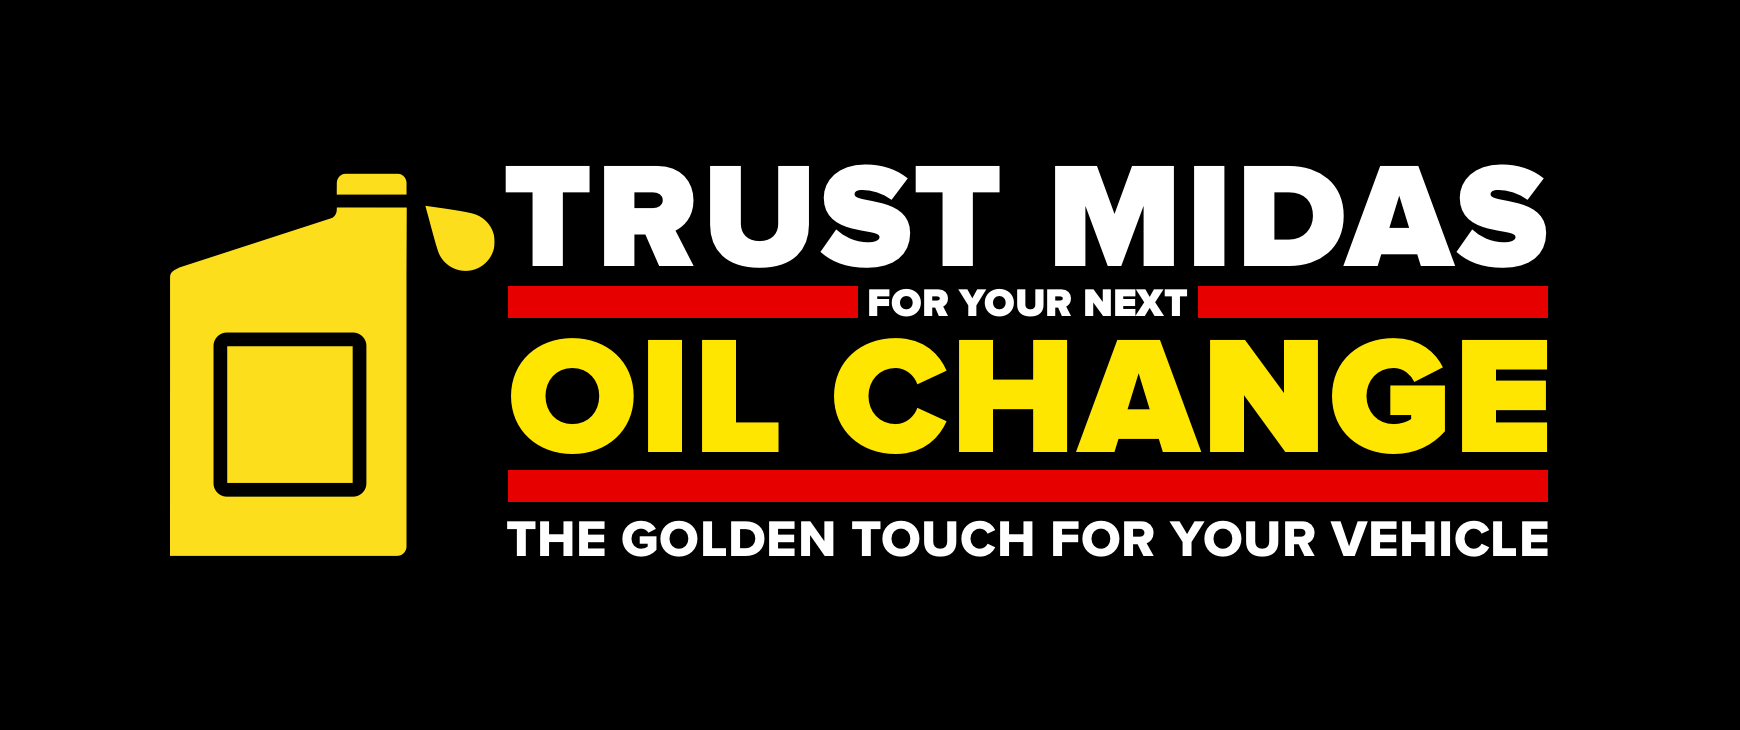 Trust Midas For Your Next Oil Change The Golden Touch For Your Vehicle